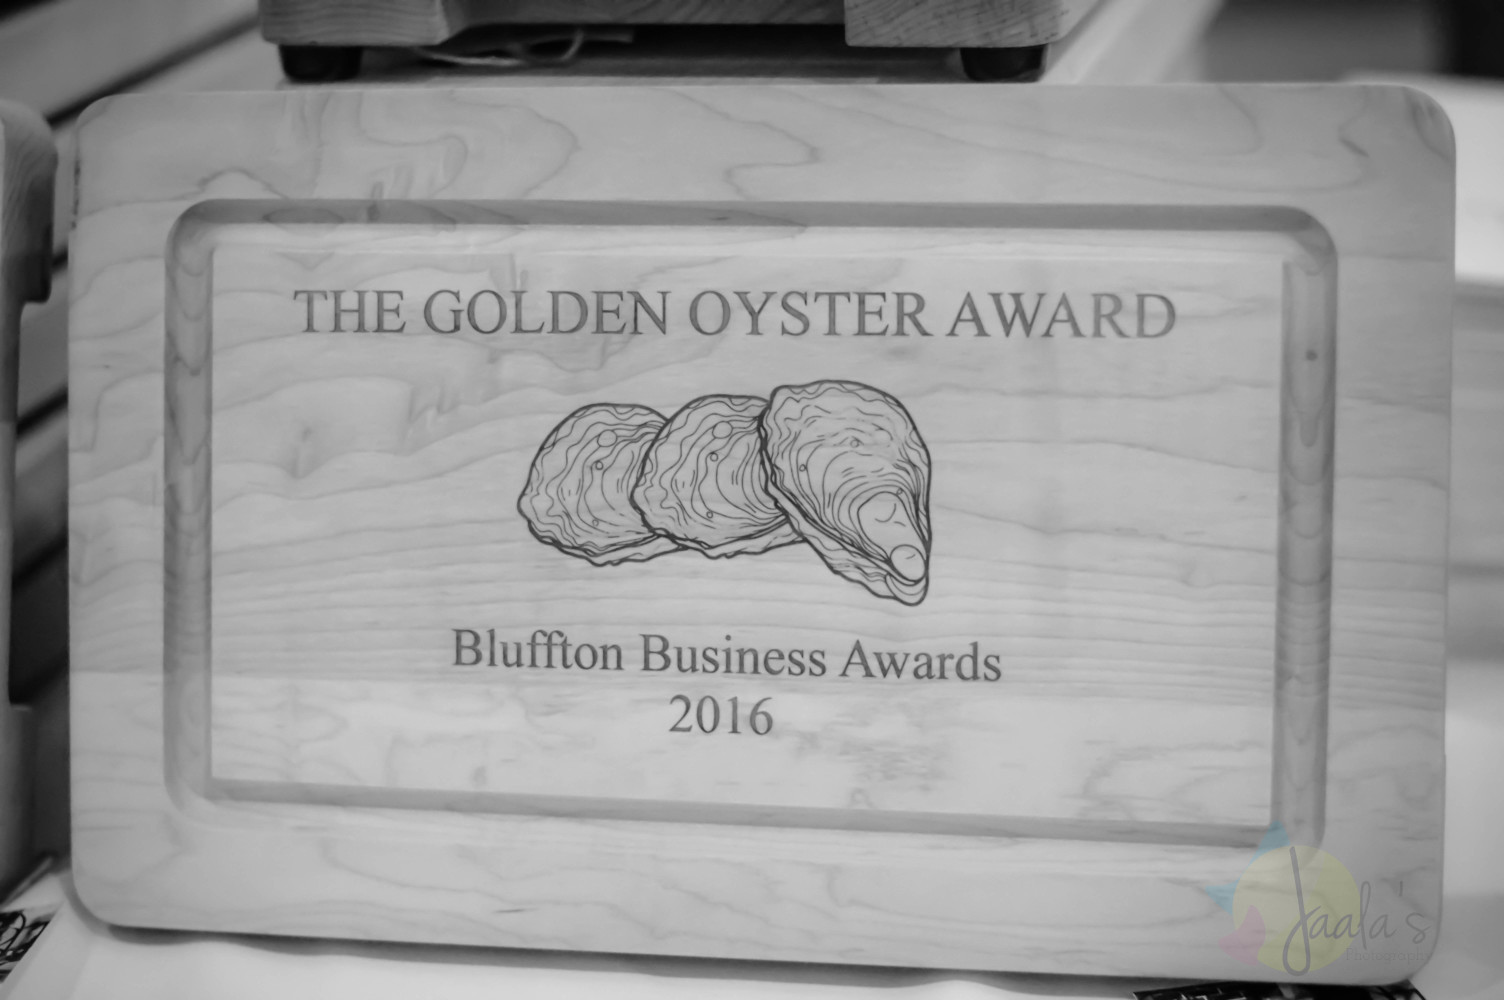 Bluffton-Business-Awards-2016.jpg